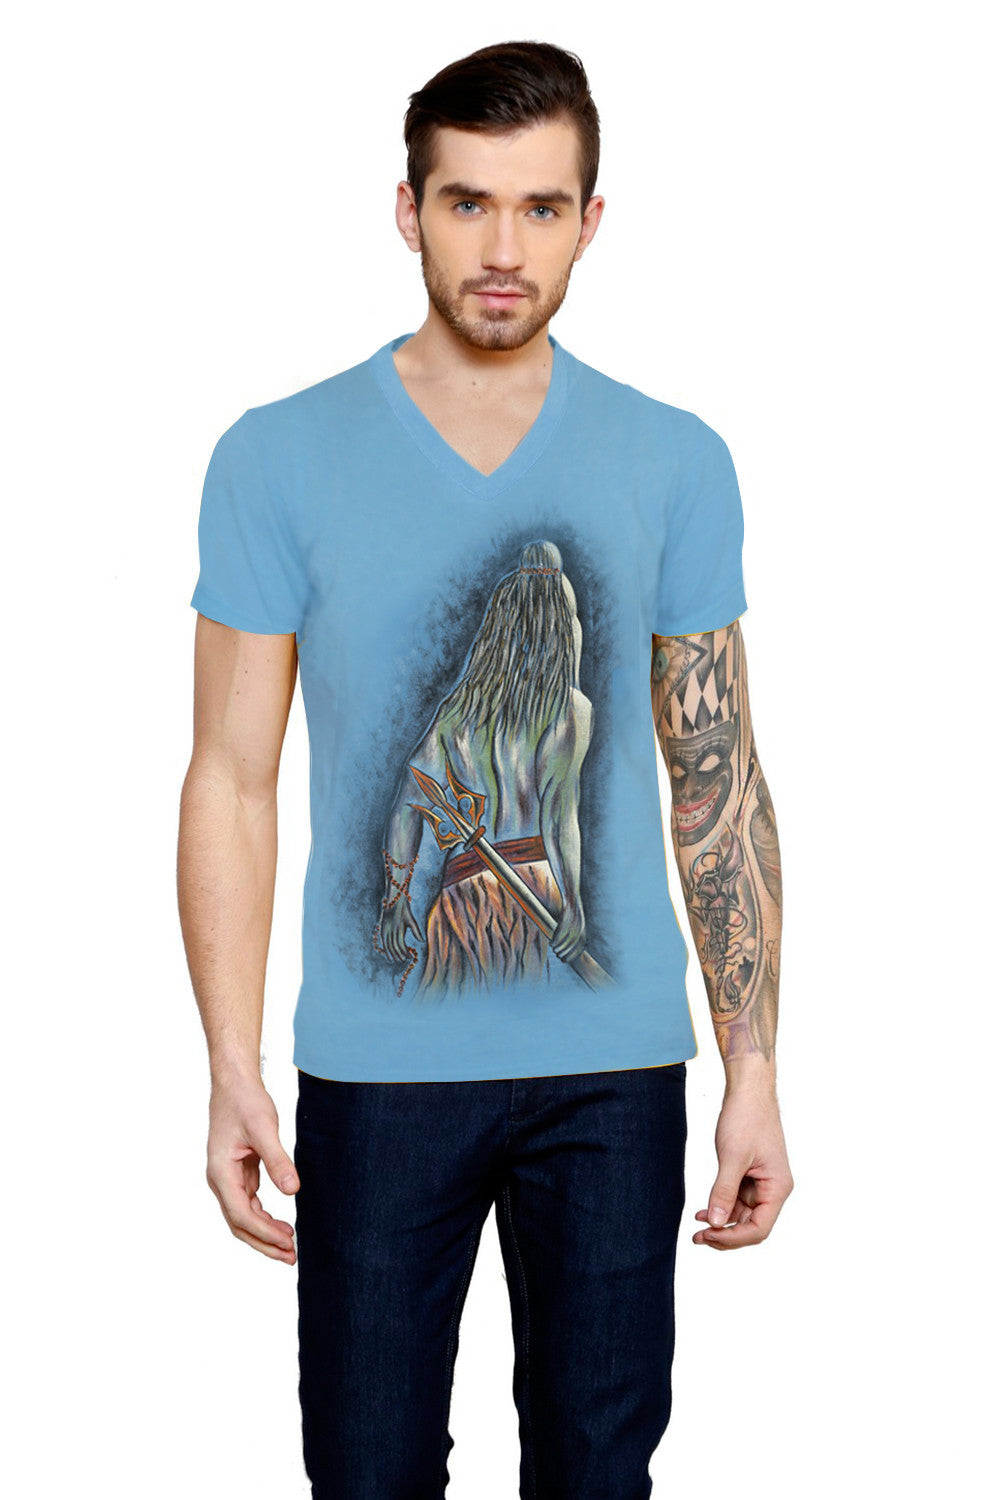 Hand-painted Resolute Shiva T-shirt - Rang Rage  - 1